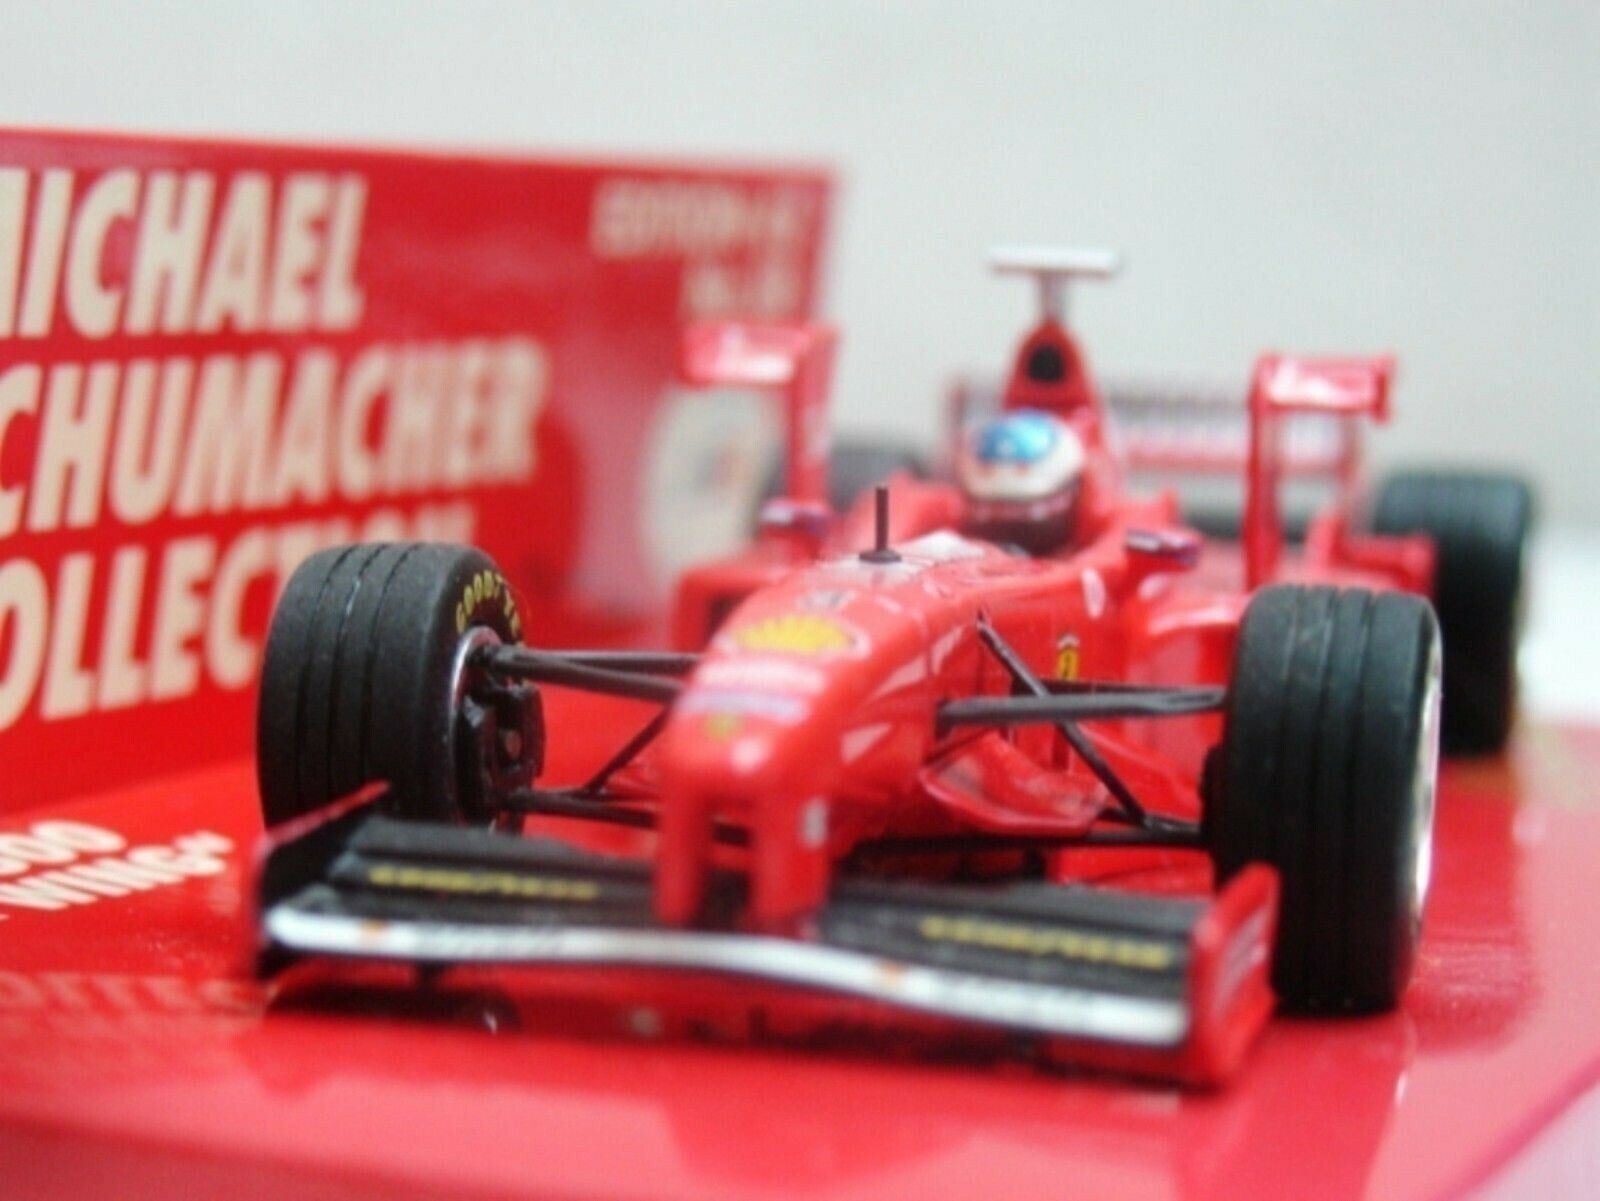 WOW EXTREMELY RARE Ferrari F300 Schumacher 38 Tower Wings 1998 1 43 Minichamps